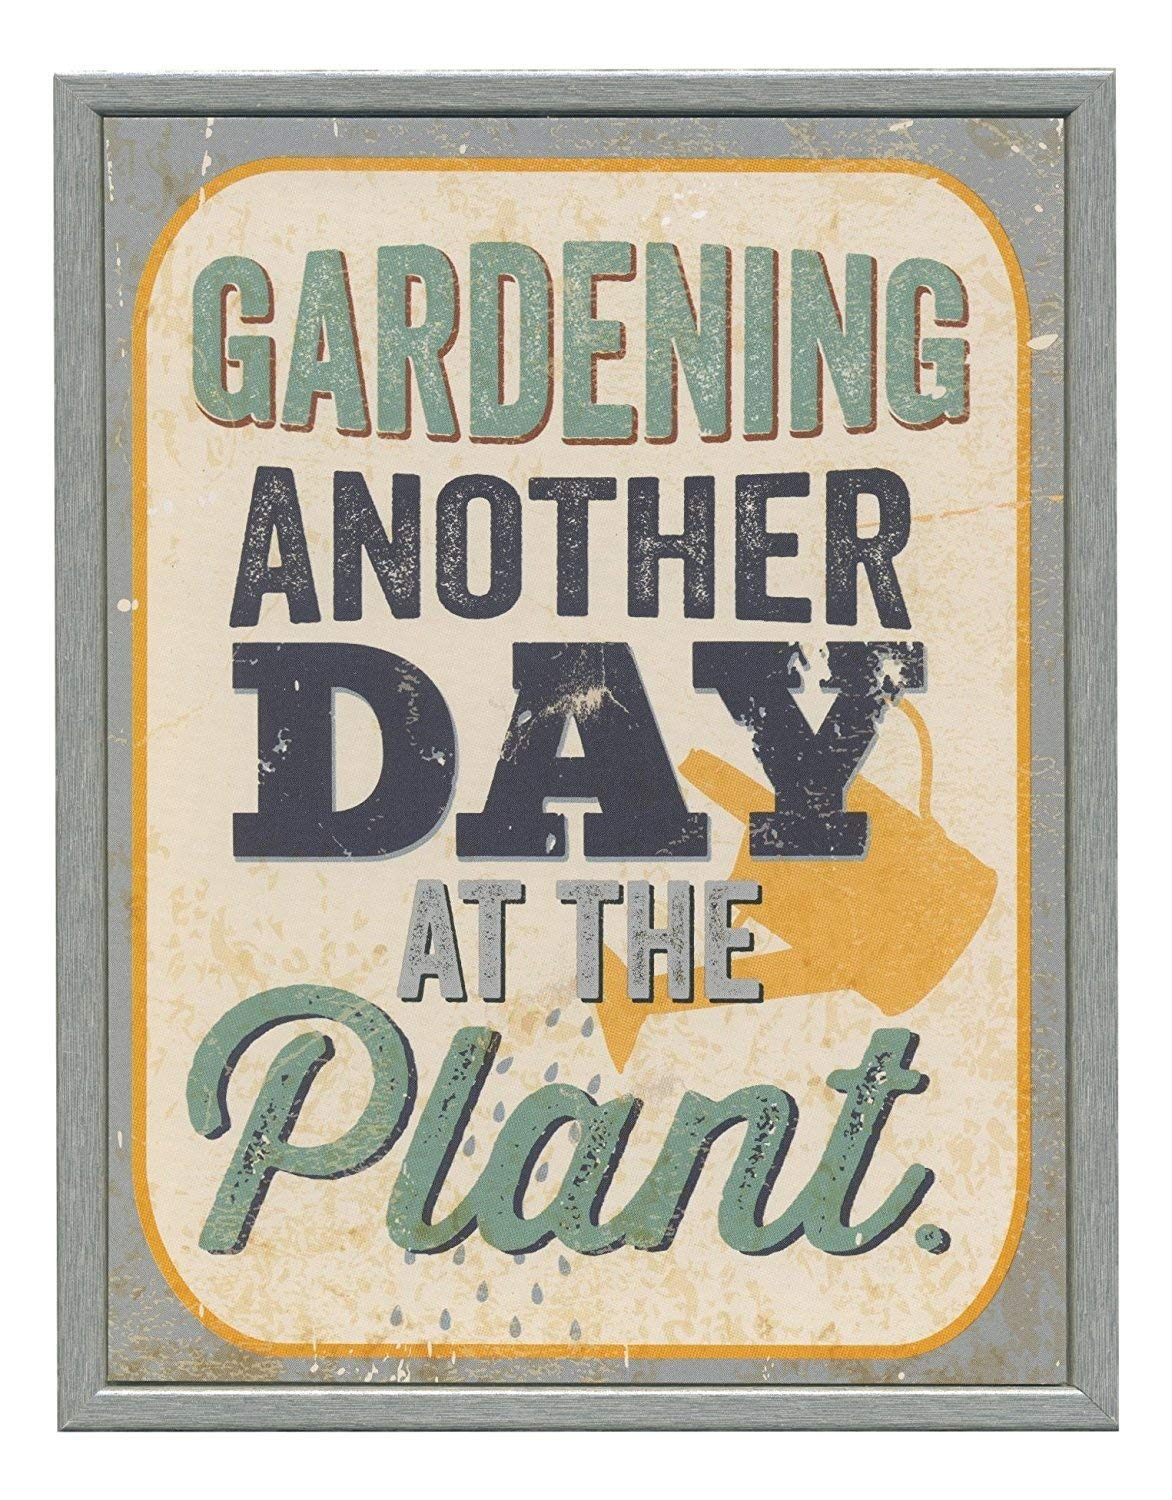 Gardening Another Day at the Plant Wooden Plaque Art